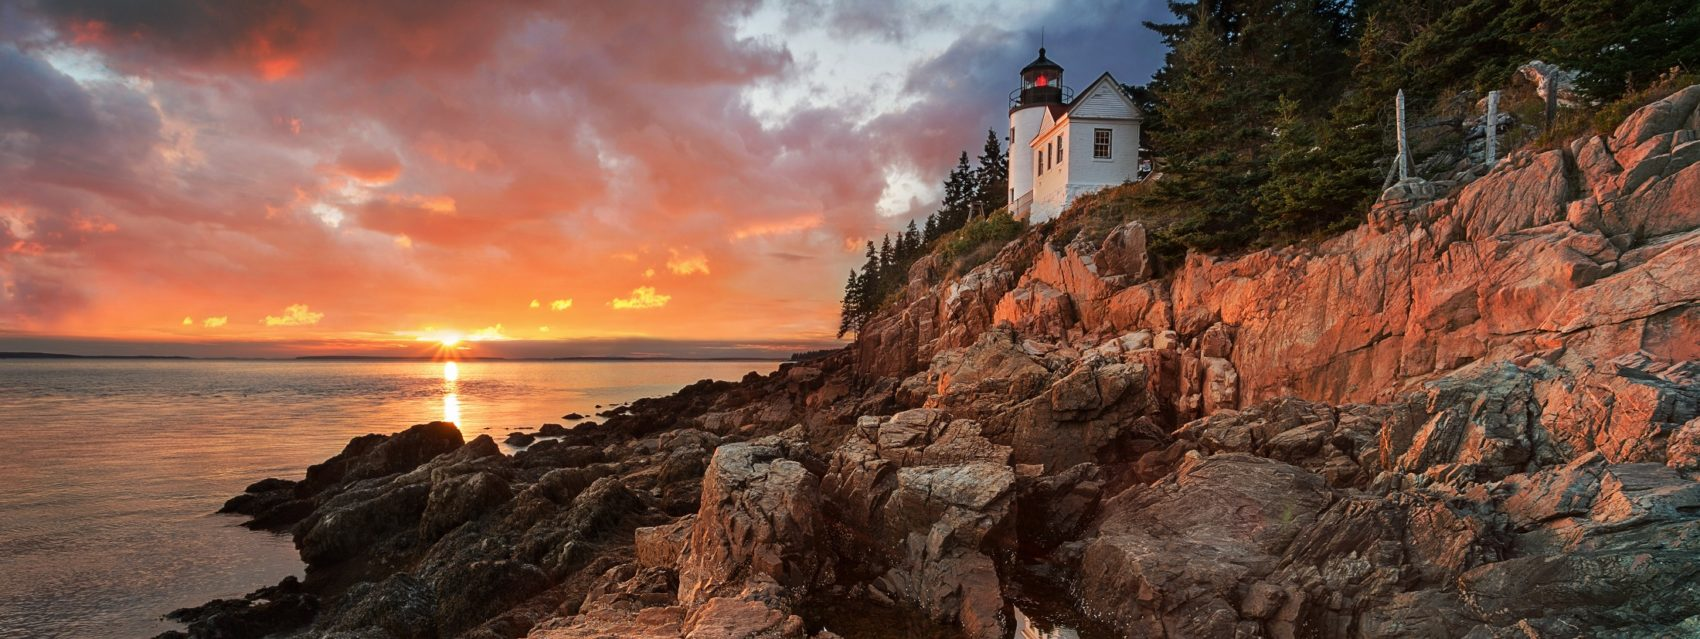 New England Coast Sunset USA